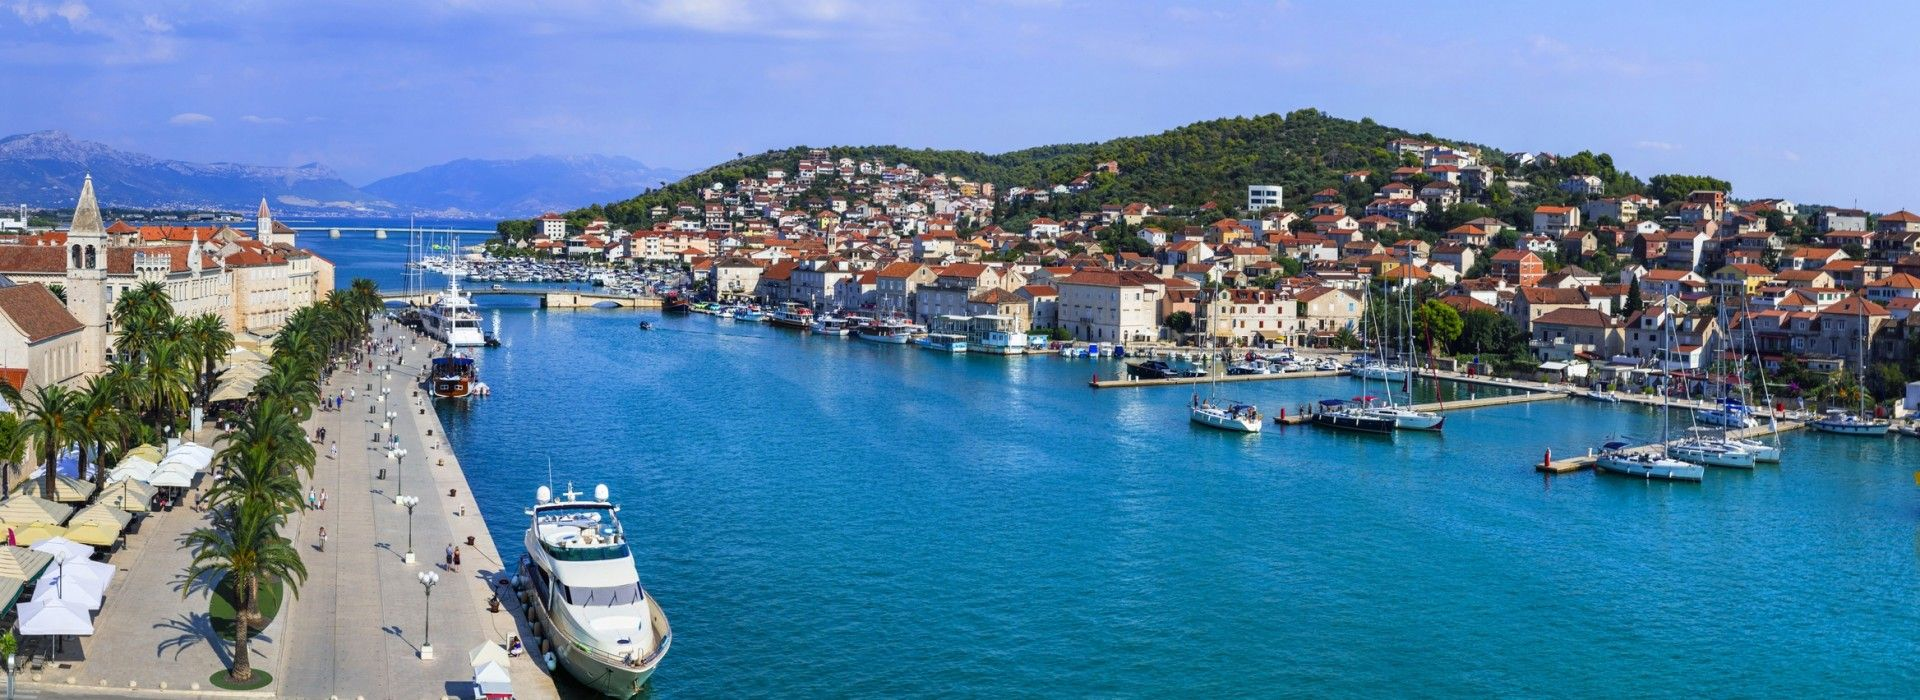 Take a Croatia cruise package and experience island hopping in Croatia like never before.